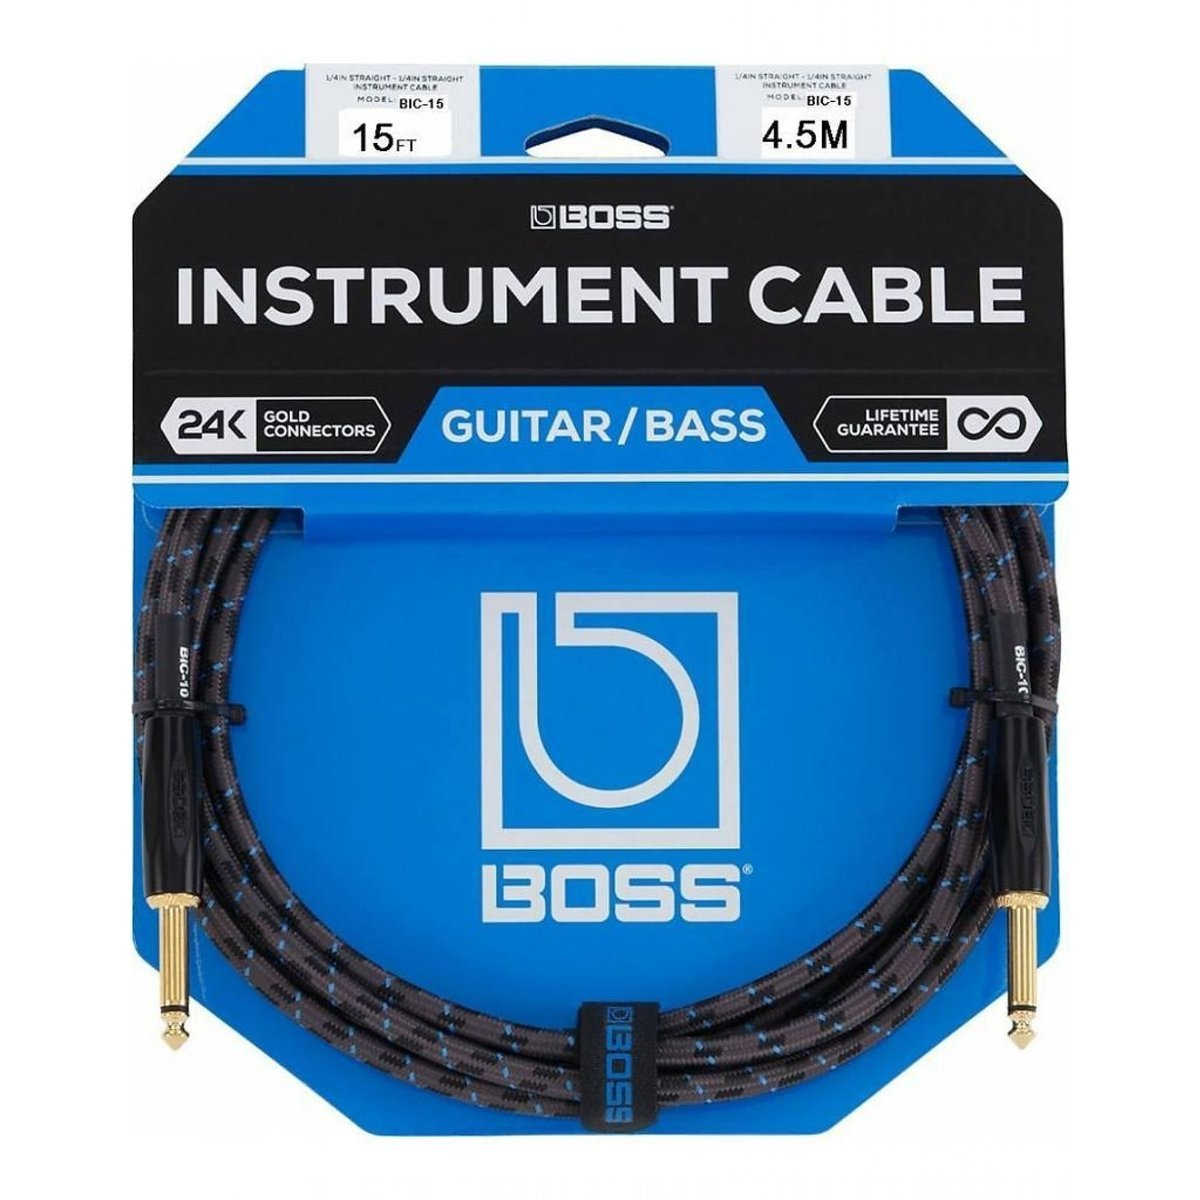 Boss Instrument Cable - 15ft